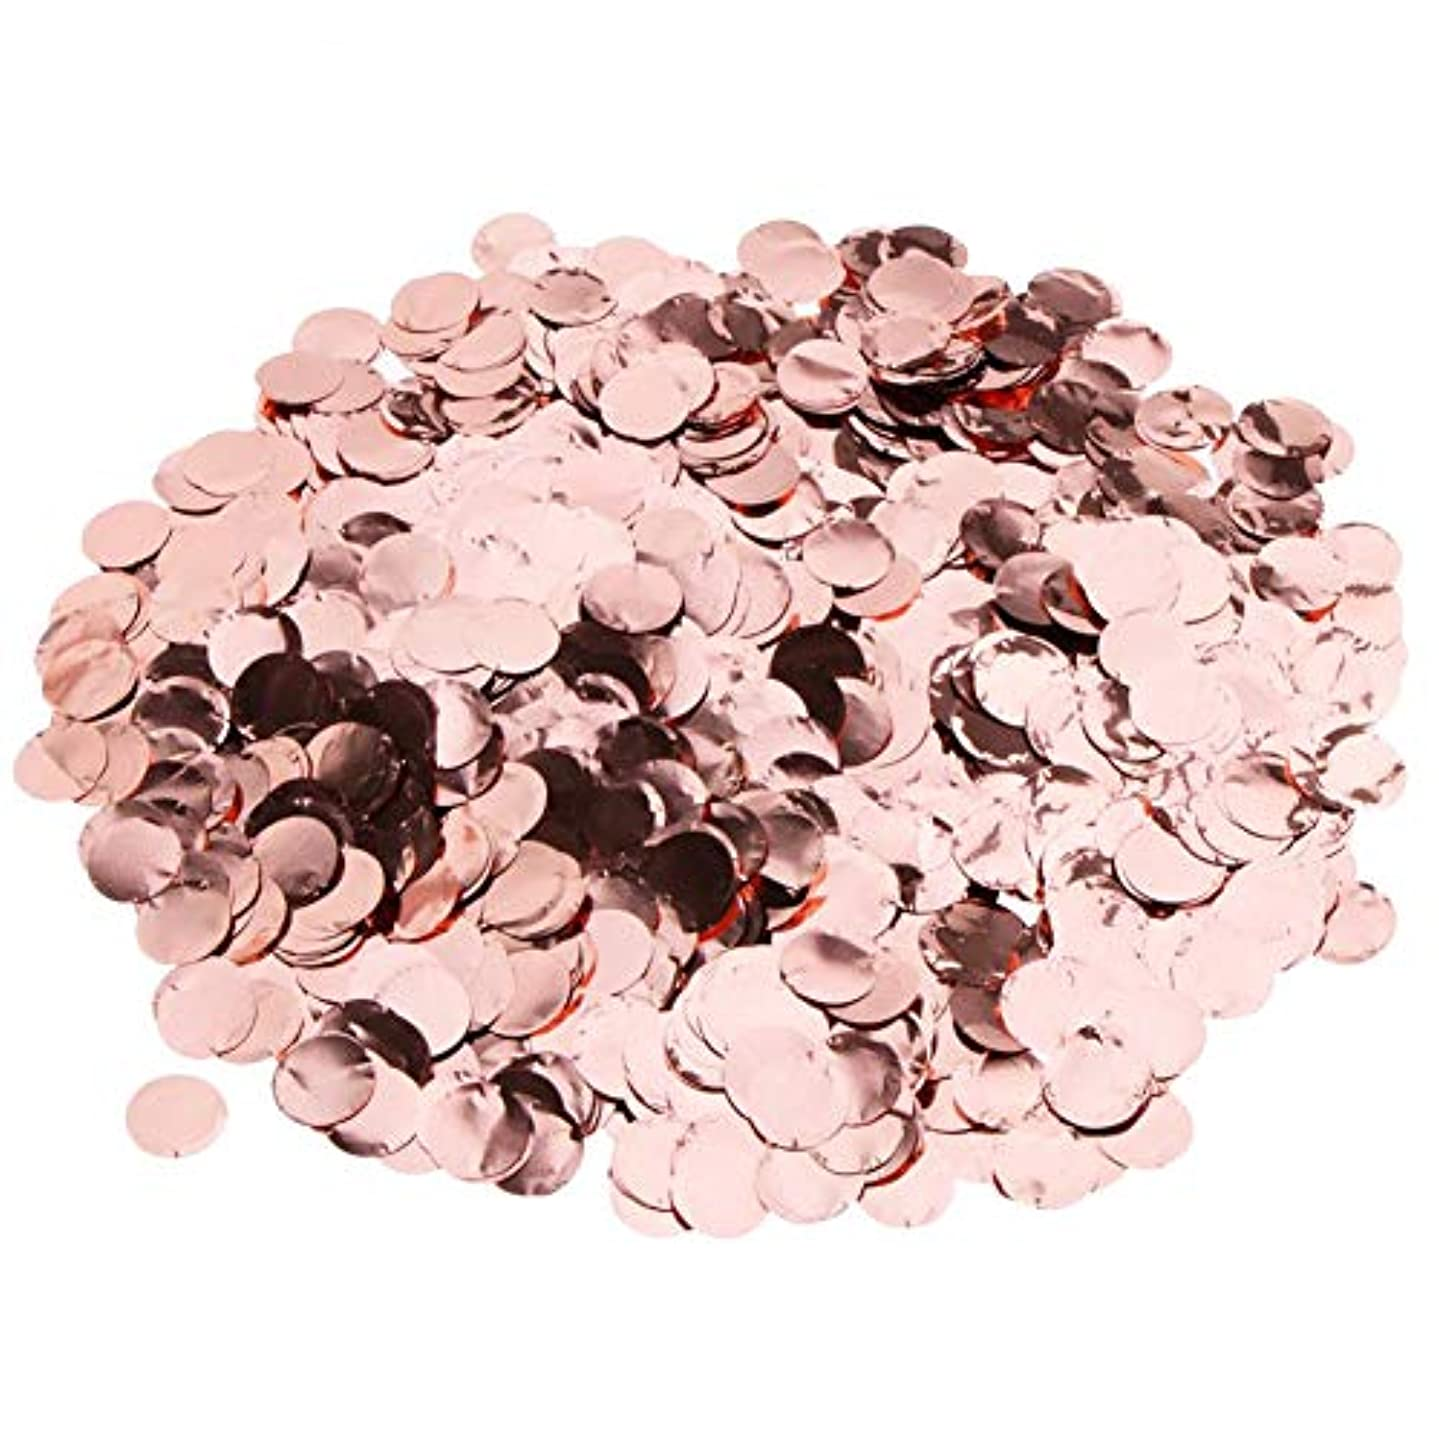 5 Packs Pop Rose Gold Confetti, Round Sequins Table Flower Balloon Classroom Table Party Decorations Confetti Sprinkle, for Wedding Holiday Anniversary Birthday, 1 Inch